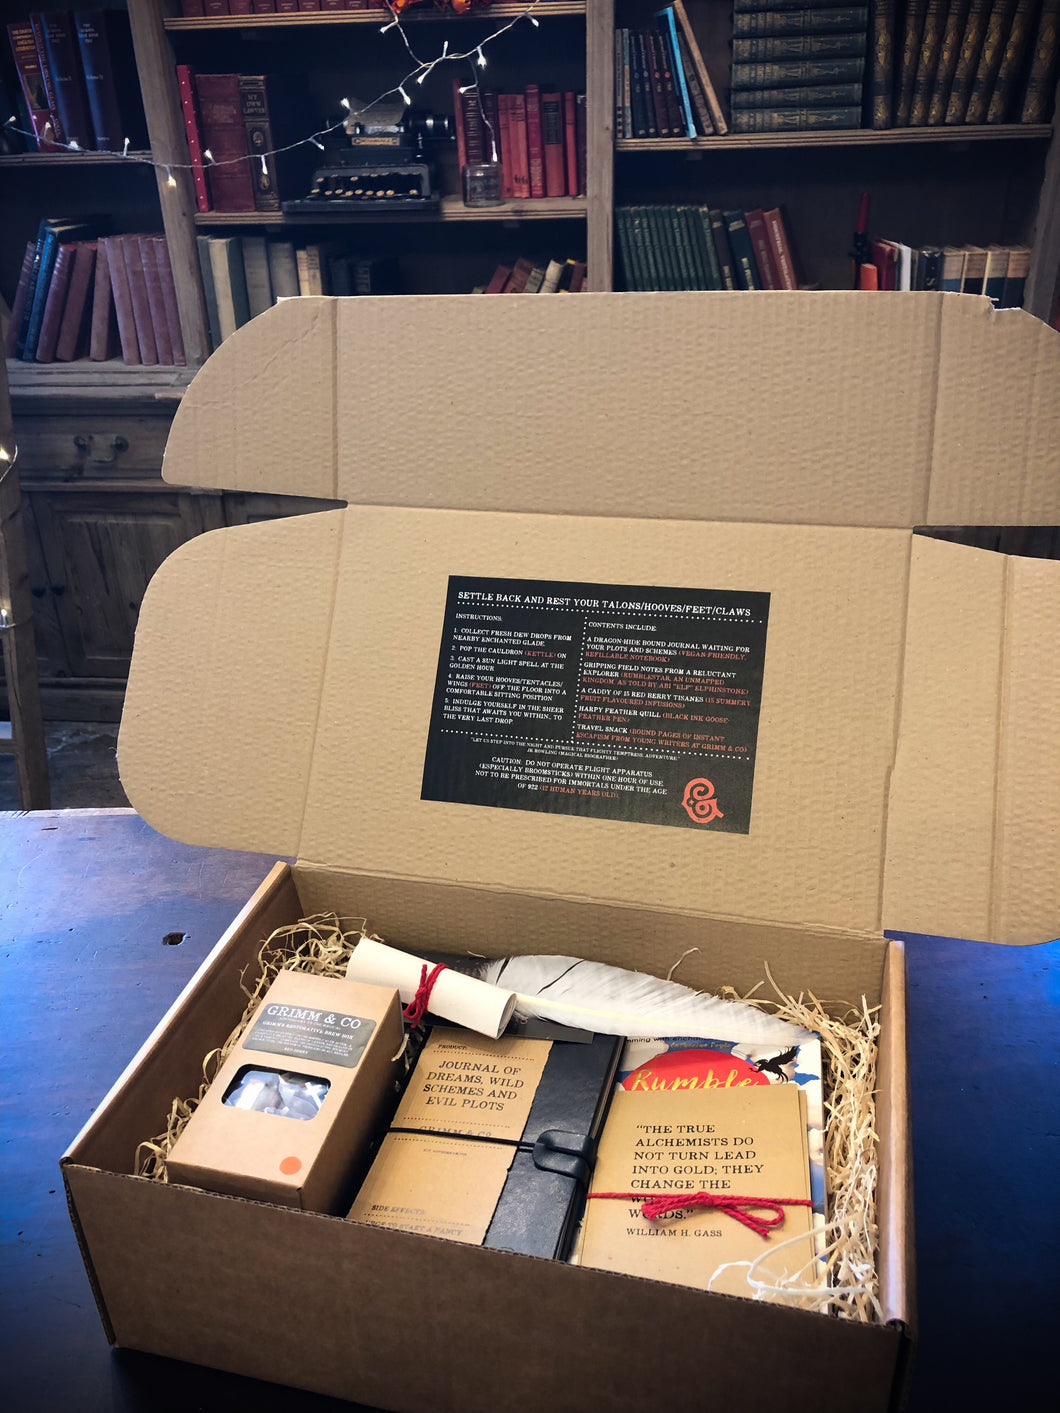 Image shows an open Novel Tea Box. A gift box bundle featuring the book Rumblestar by Abi Elphinstone. The set shows a box of red berry tea, a midnight blue Journal of Dreams, the novel, a white biro quill, some printed quote cards on kraft card and a scrolled certificate of awesome tucked within wood wool.